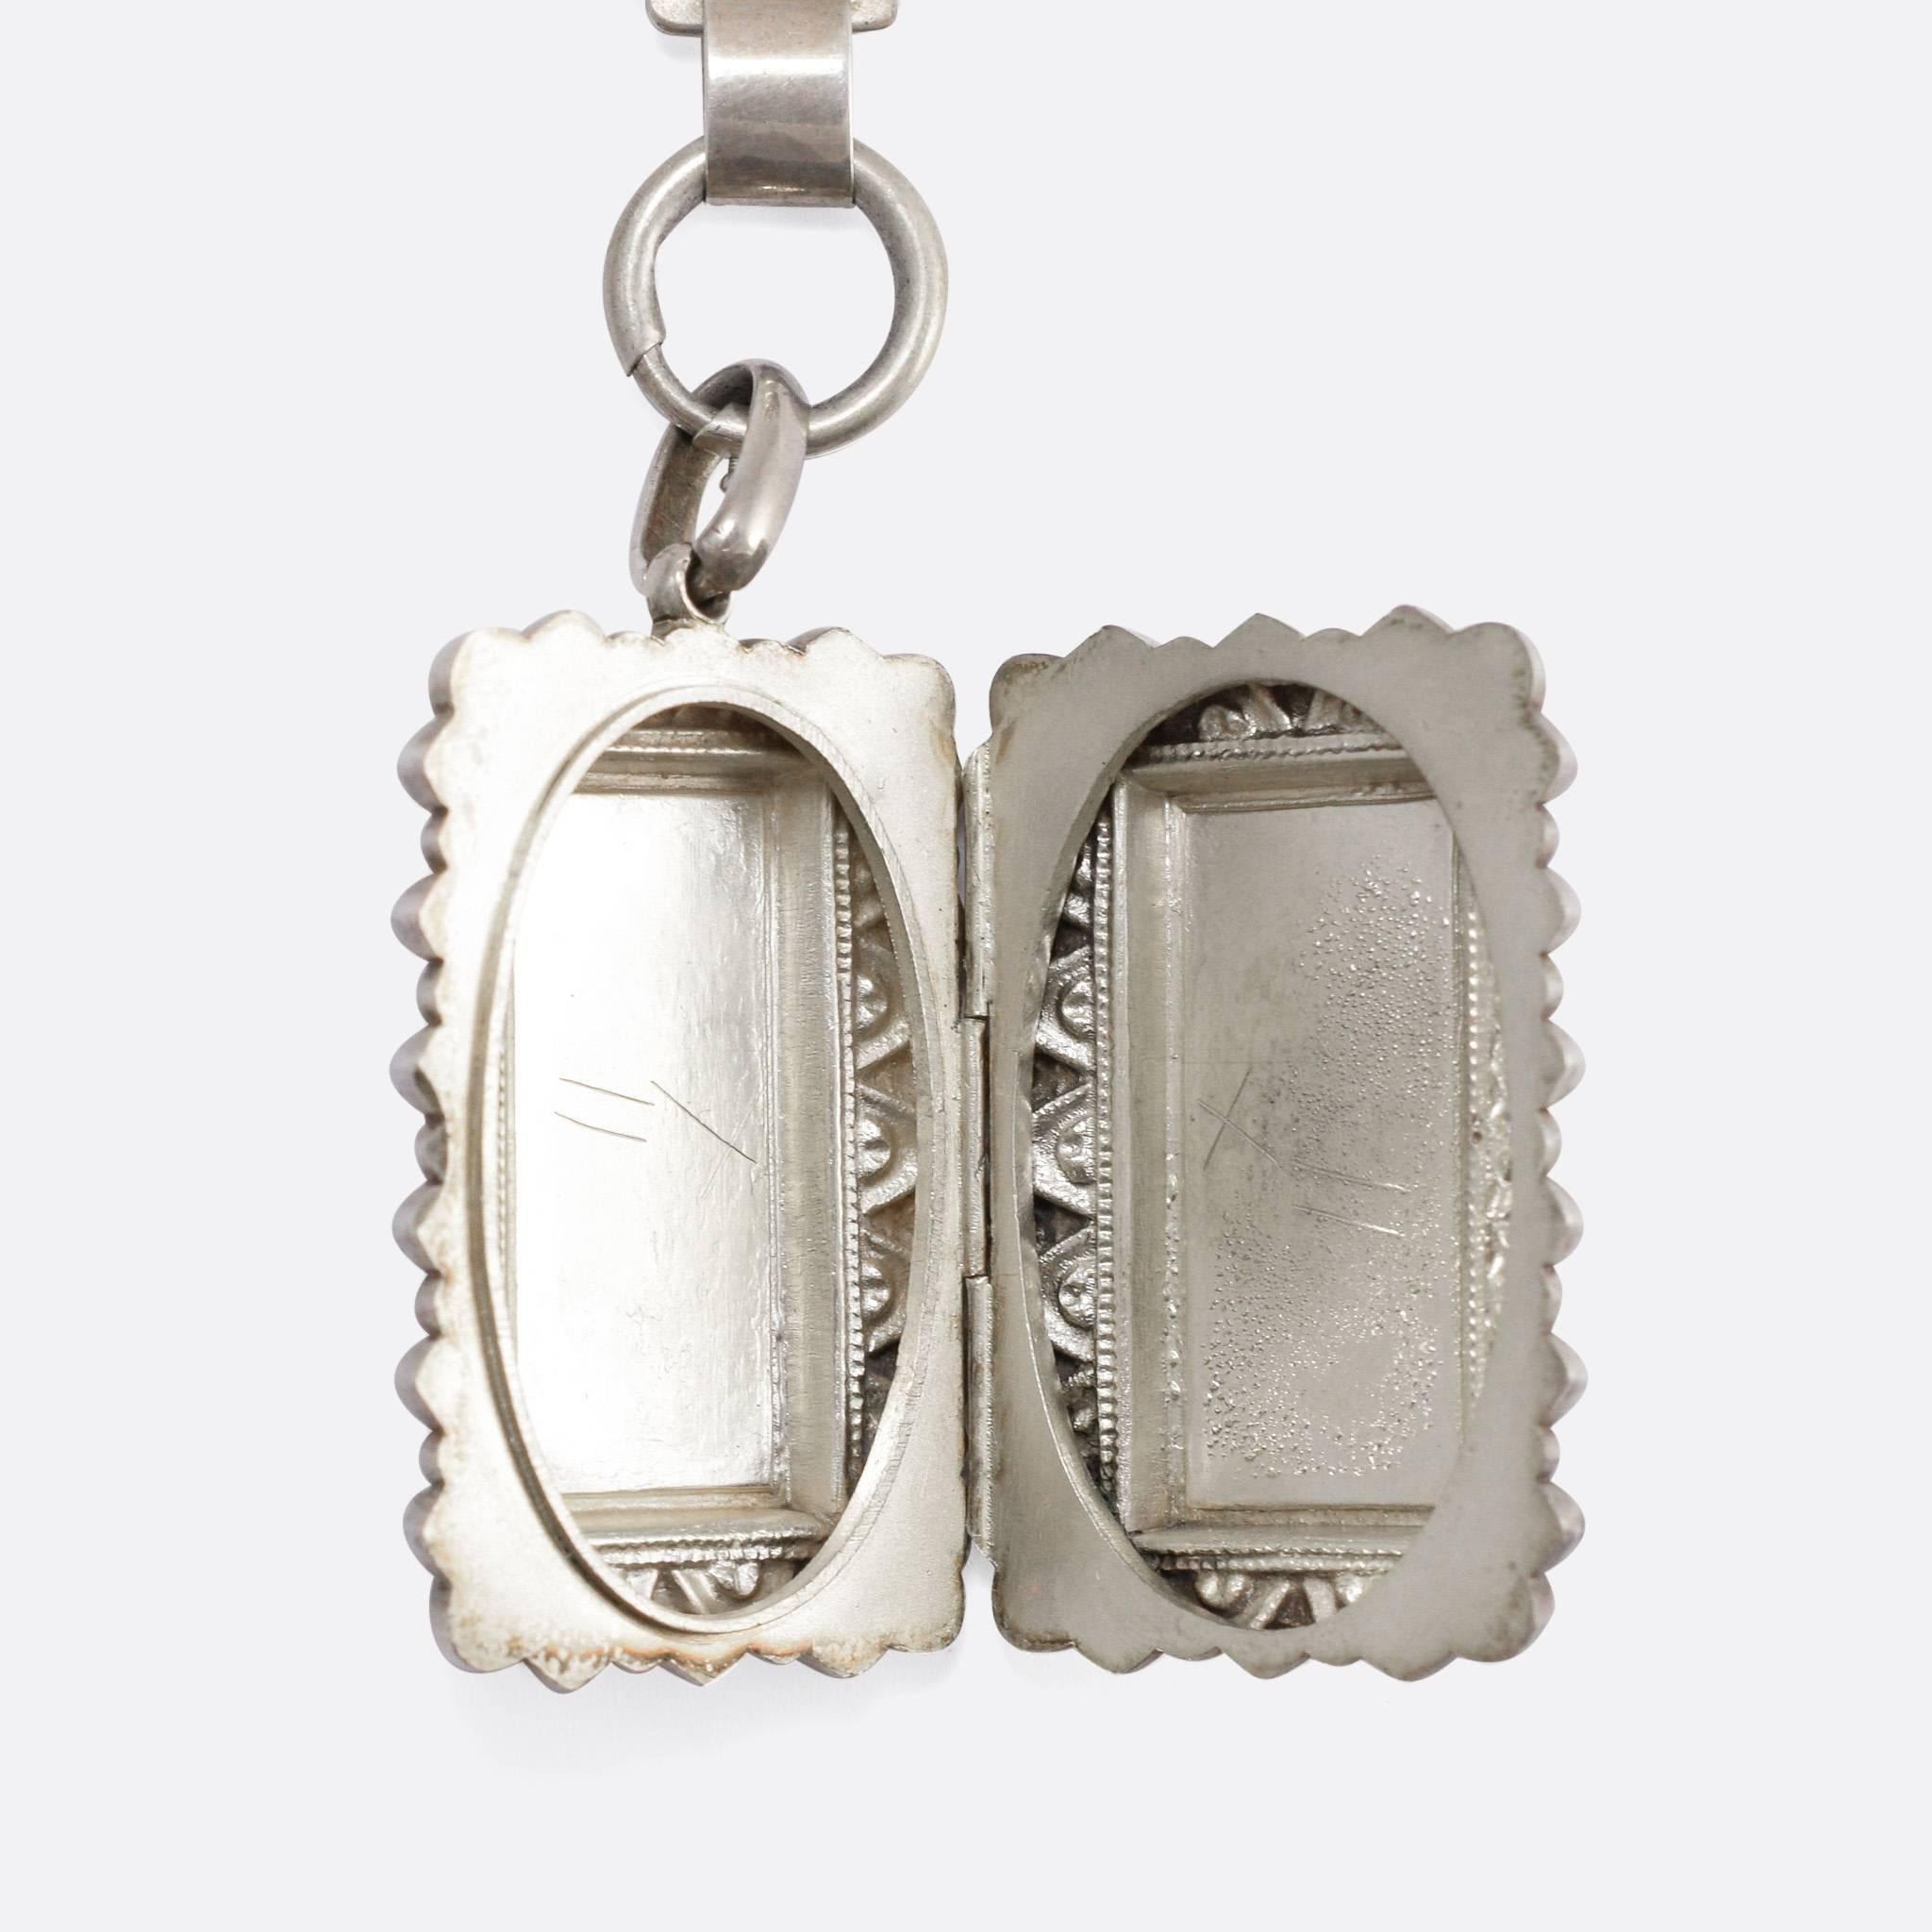 sterling locket id victorian memorial necklaces antique lockets at jewelry and collar silver j pendant org